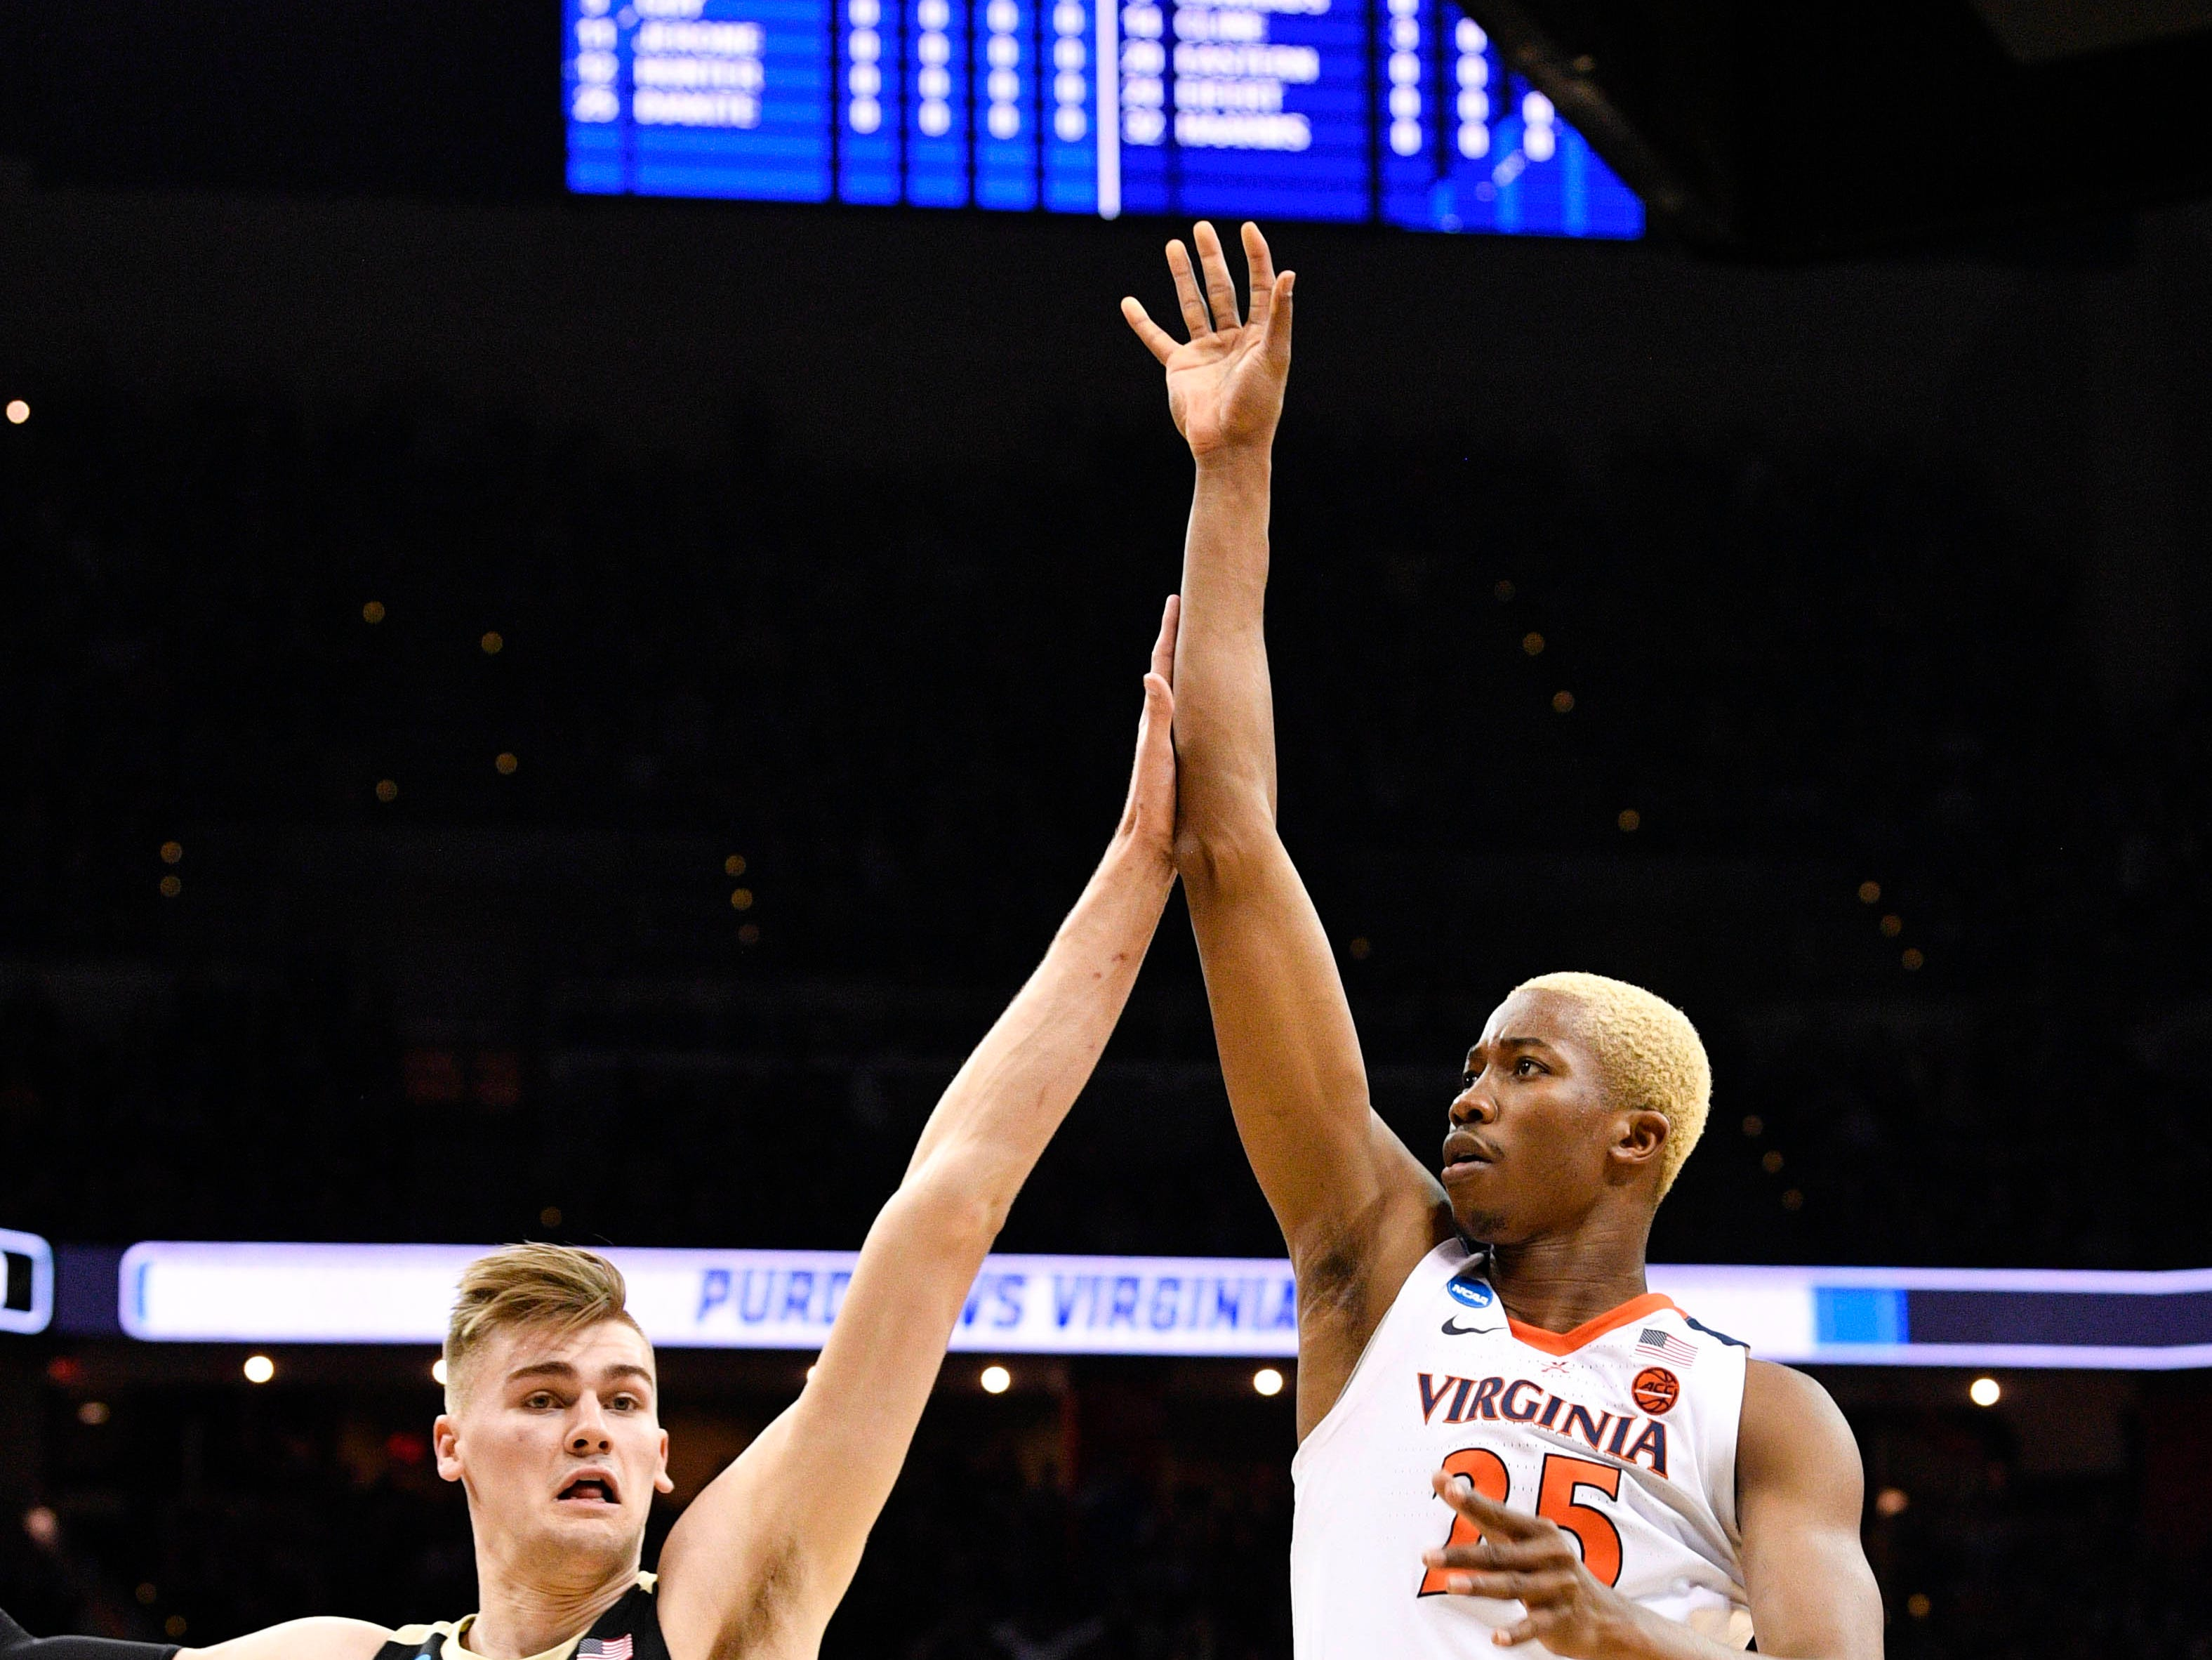 Mar 30, 2019; Louisville, KY, United States; Virginia Cavaliers forward Mamadi Diakite (25) shoots as Purdue Boilermakers center Matt Haarms (32) defends during the first half in the championship game of the south regional of the 2019 NCAA Tournament at KFC Yum Center. Mandatory Credit: Jamie Rhodes-USA TODAY Sports